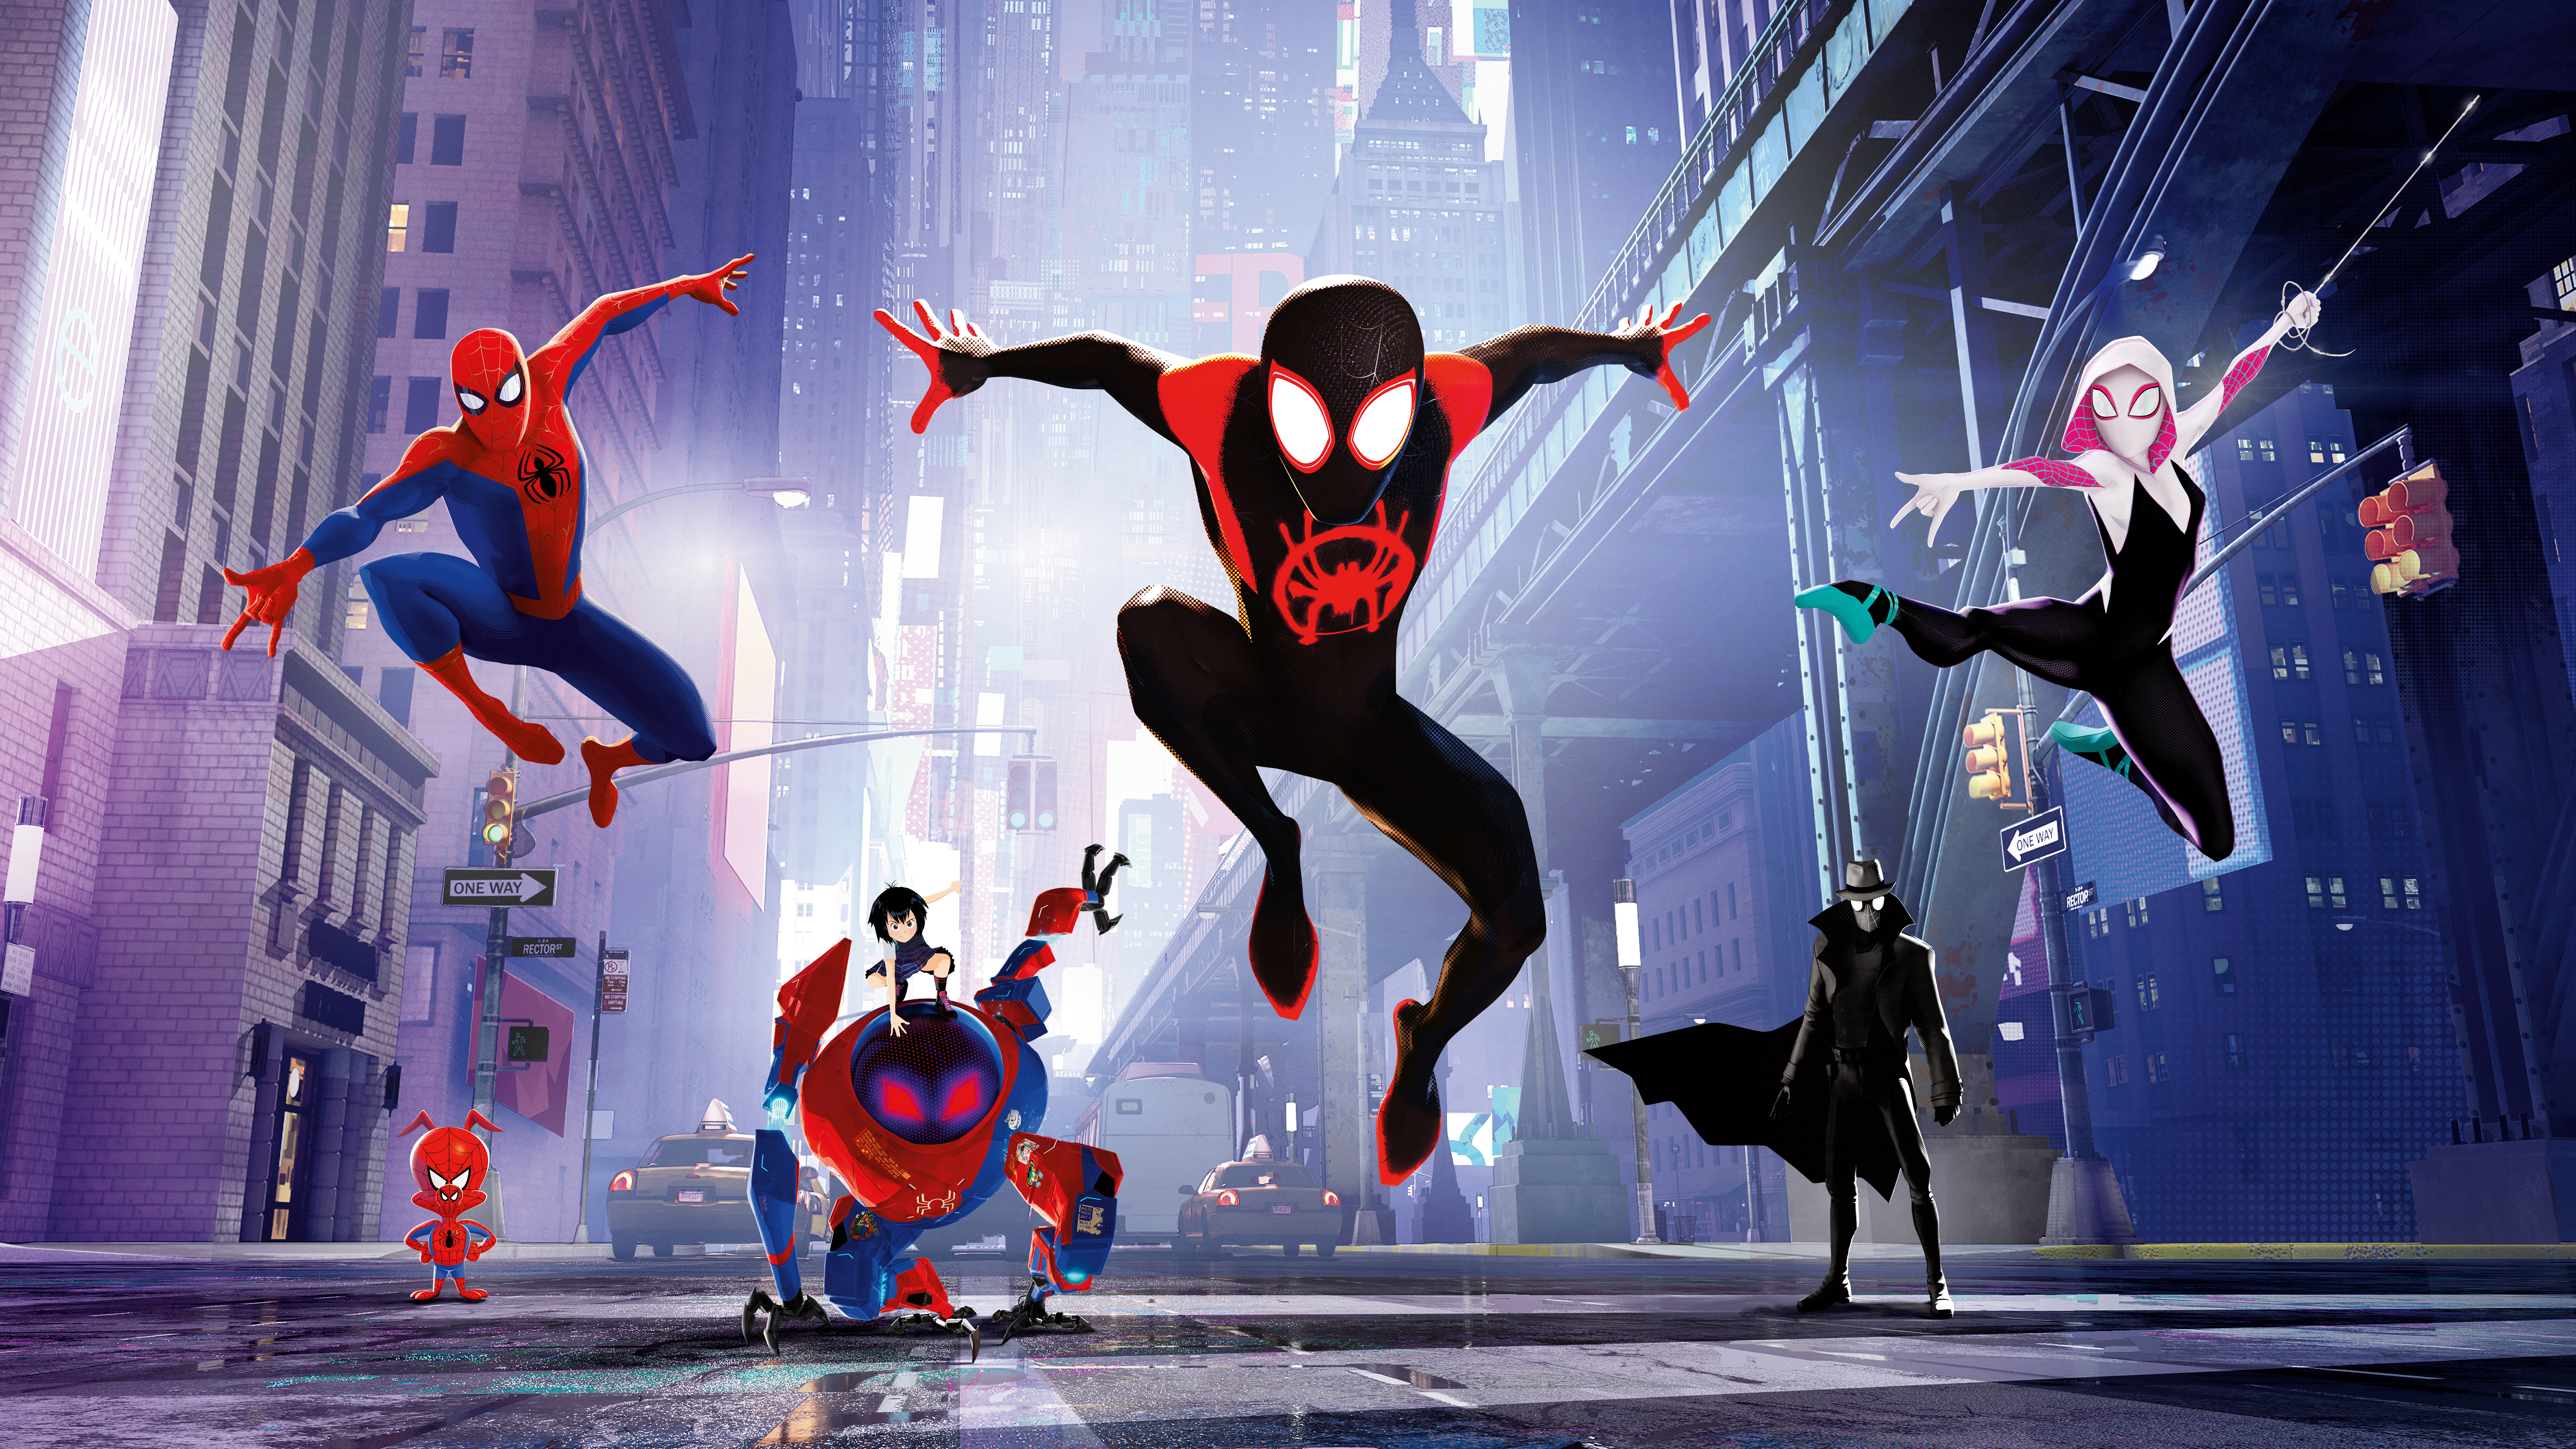 Minion Wallpapers 3d Spider Man Into The Spider Verse 4k 8k Wallpapers Hd